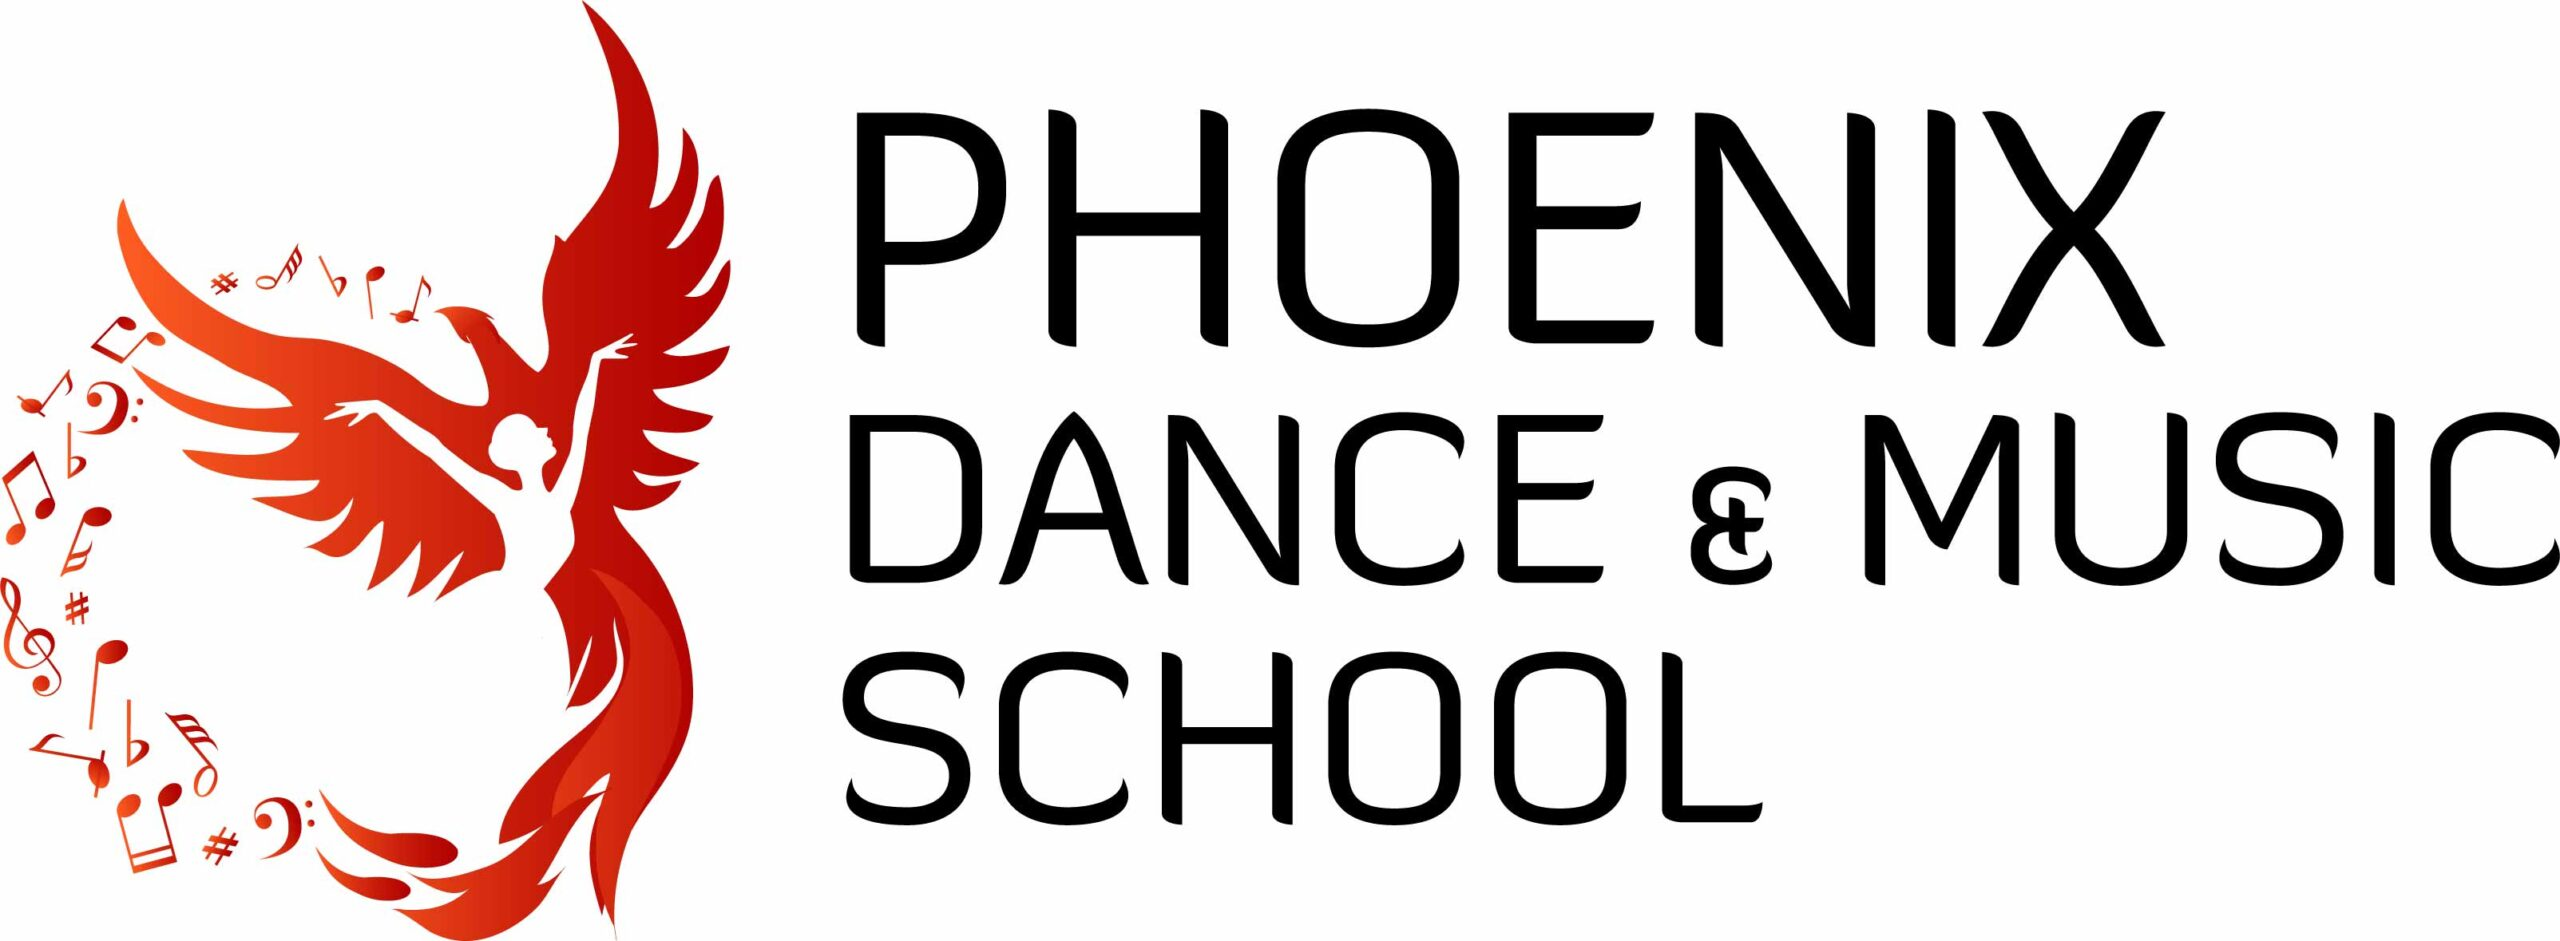 Phoenix Dance & Music School